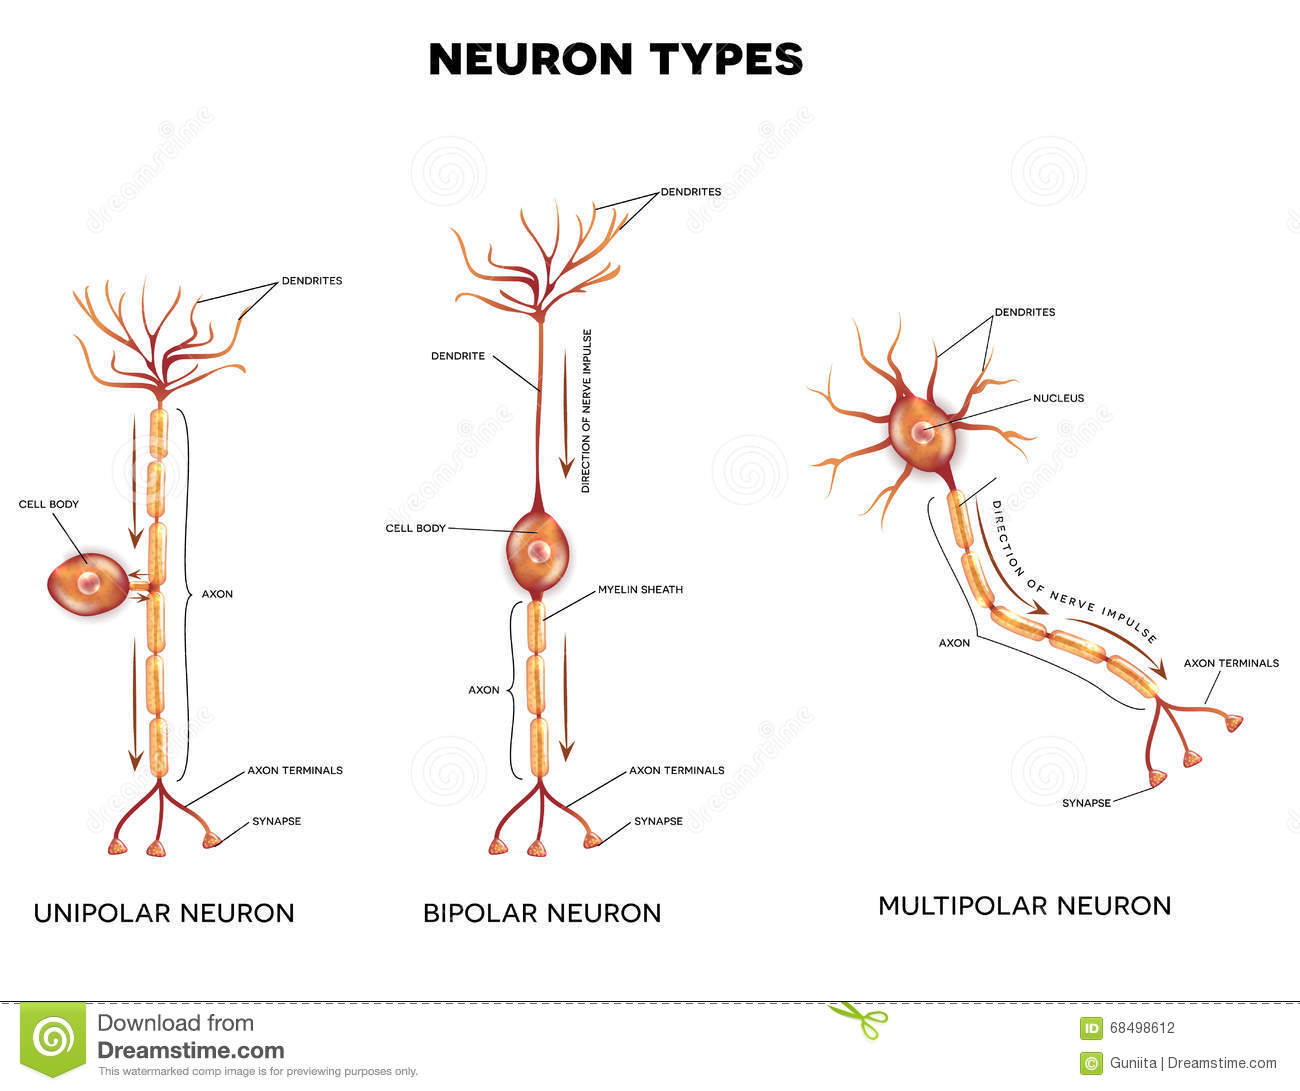 multipolar neuron diagram labeled yamaha yfz 450 wiring types of neurons cartoon vector cartoondealer 52092345